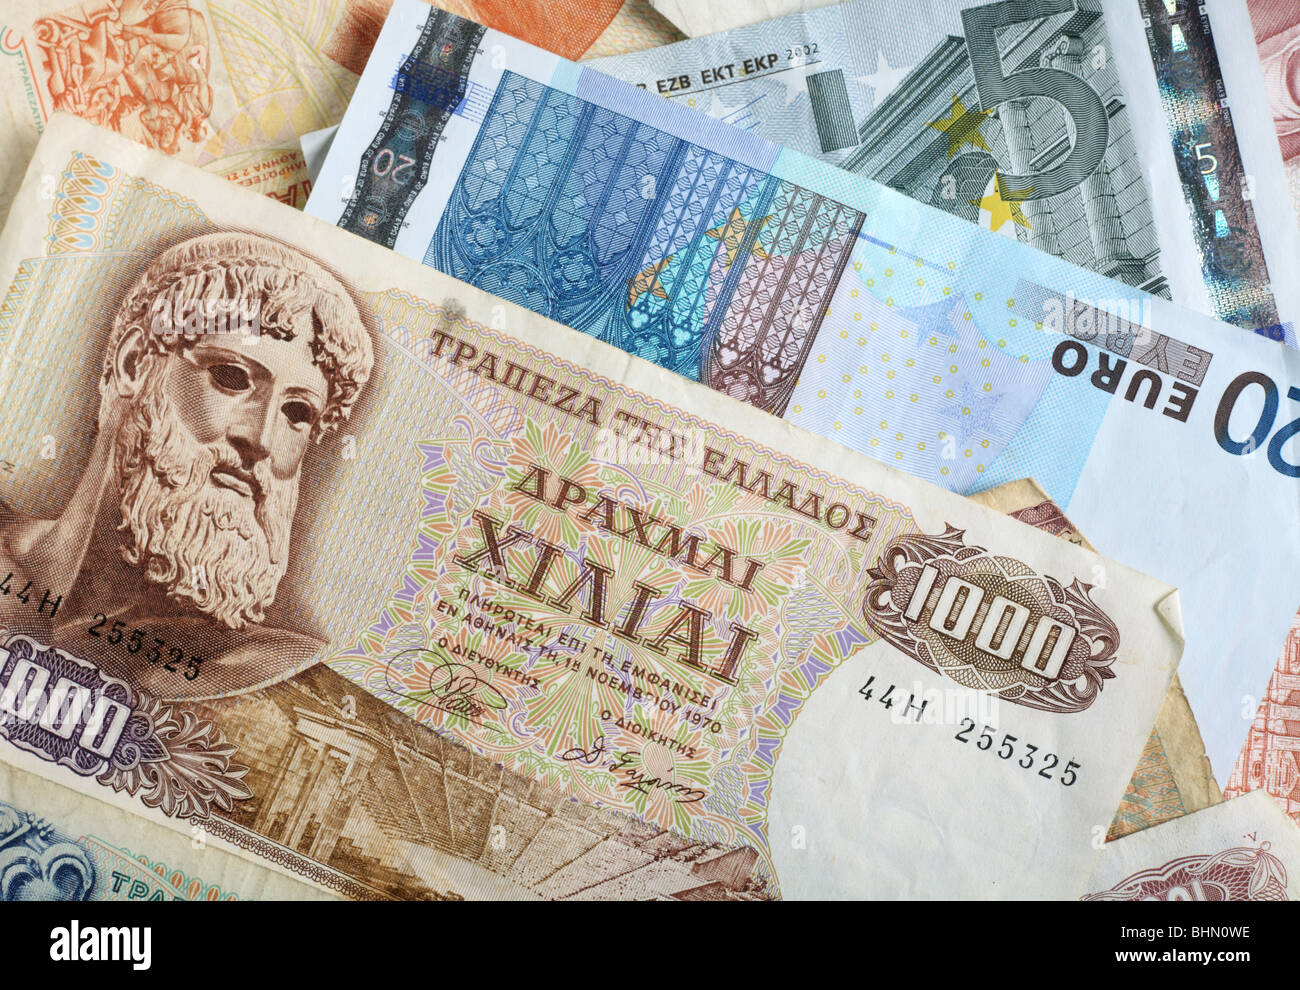 A mixture of old Greek drachma banknotes and euro notes that succeeded them. - Stock Image